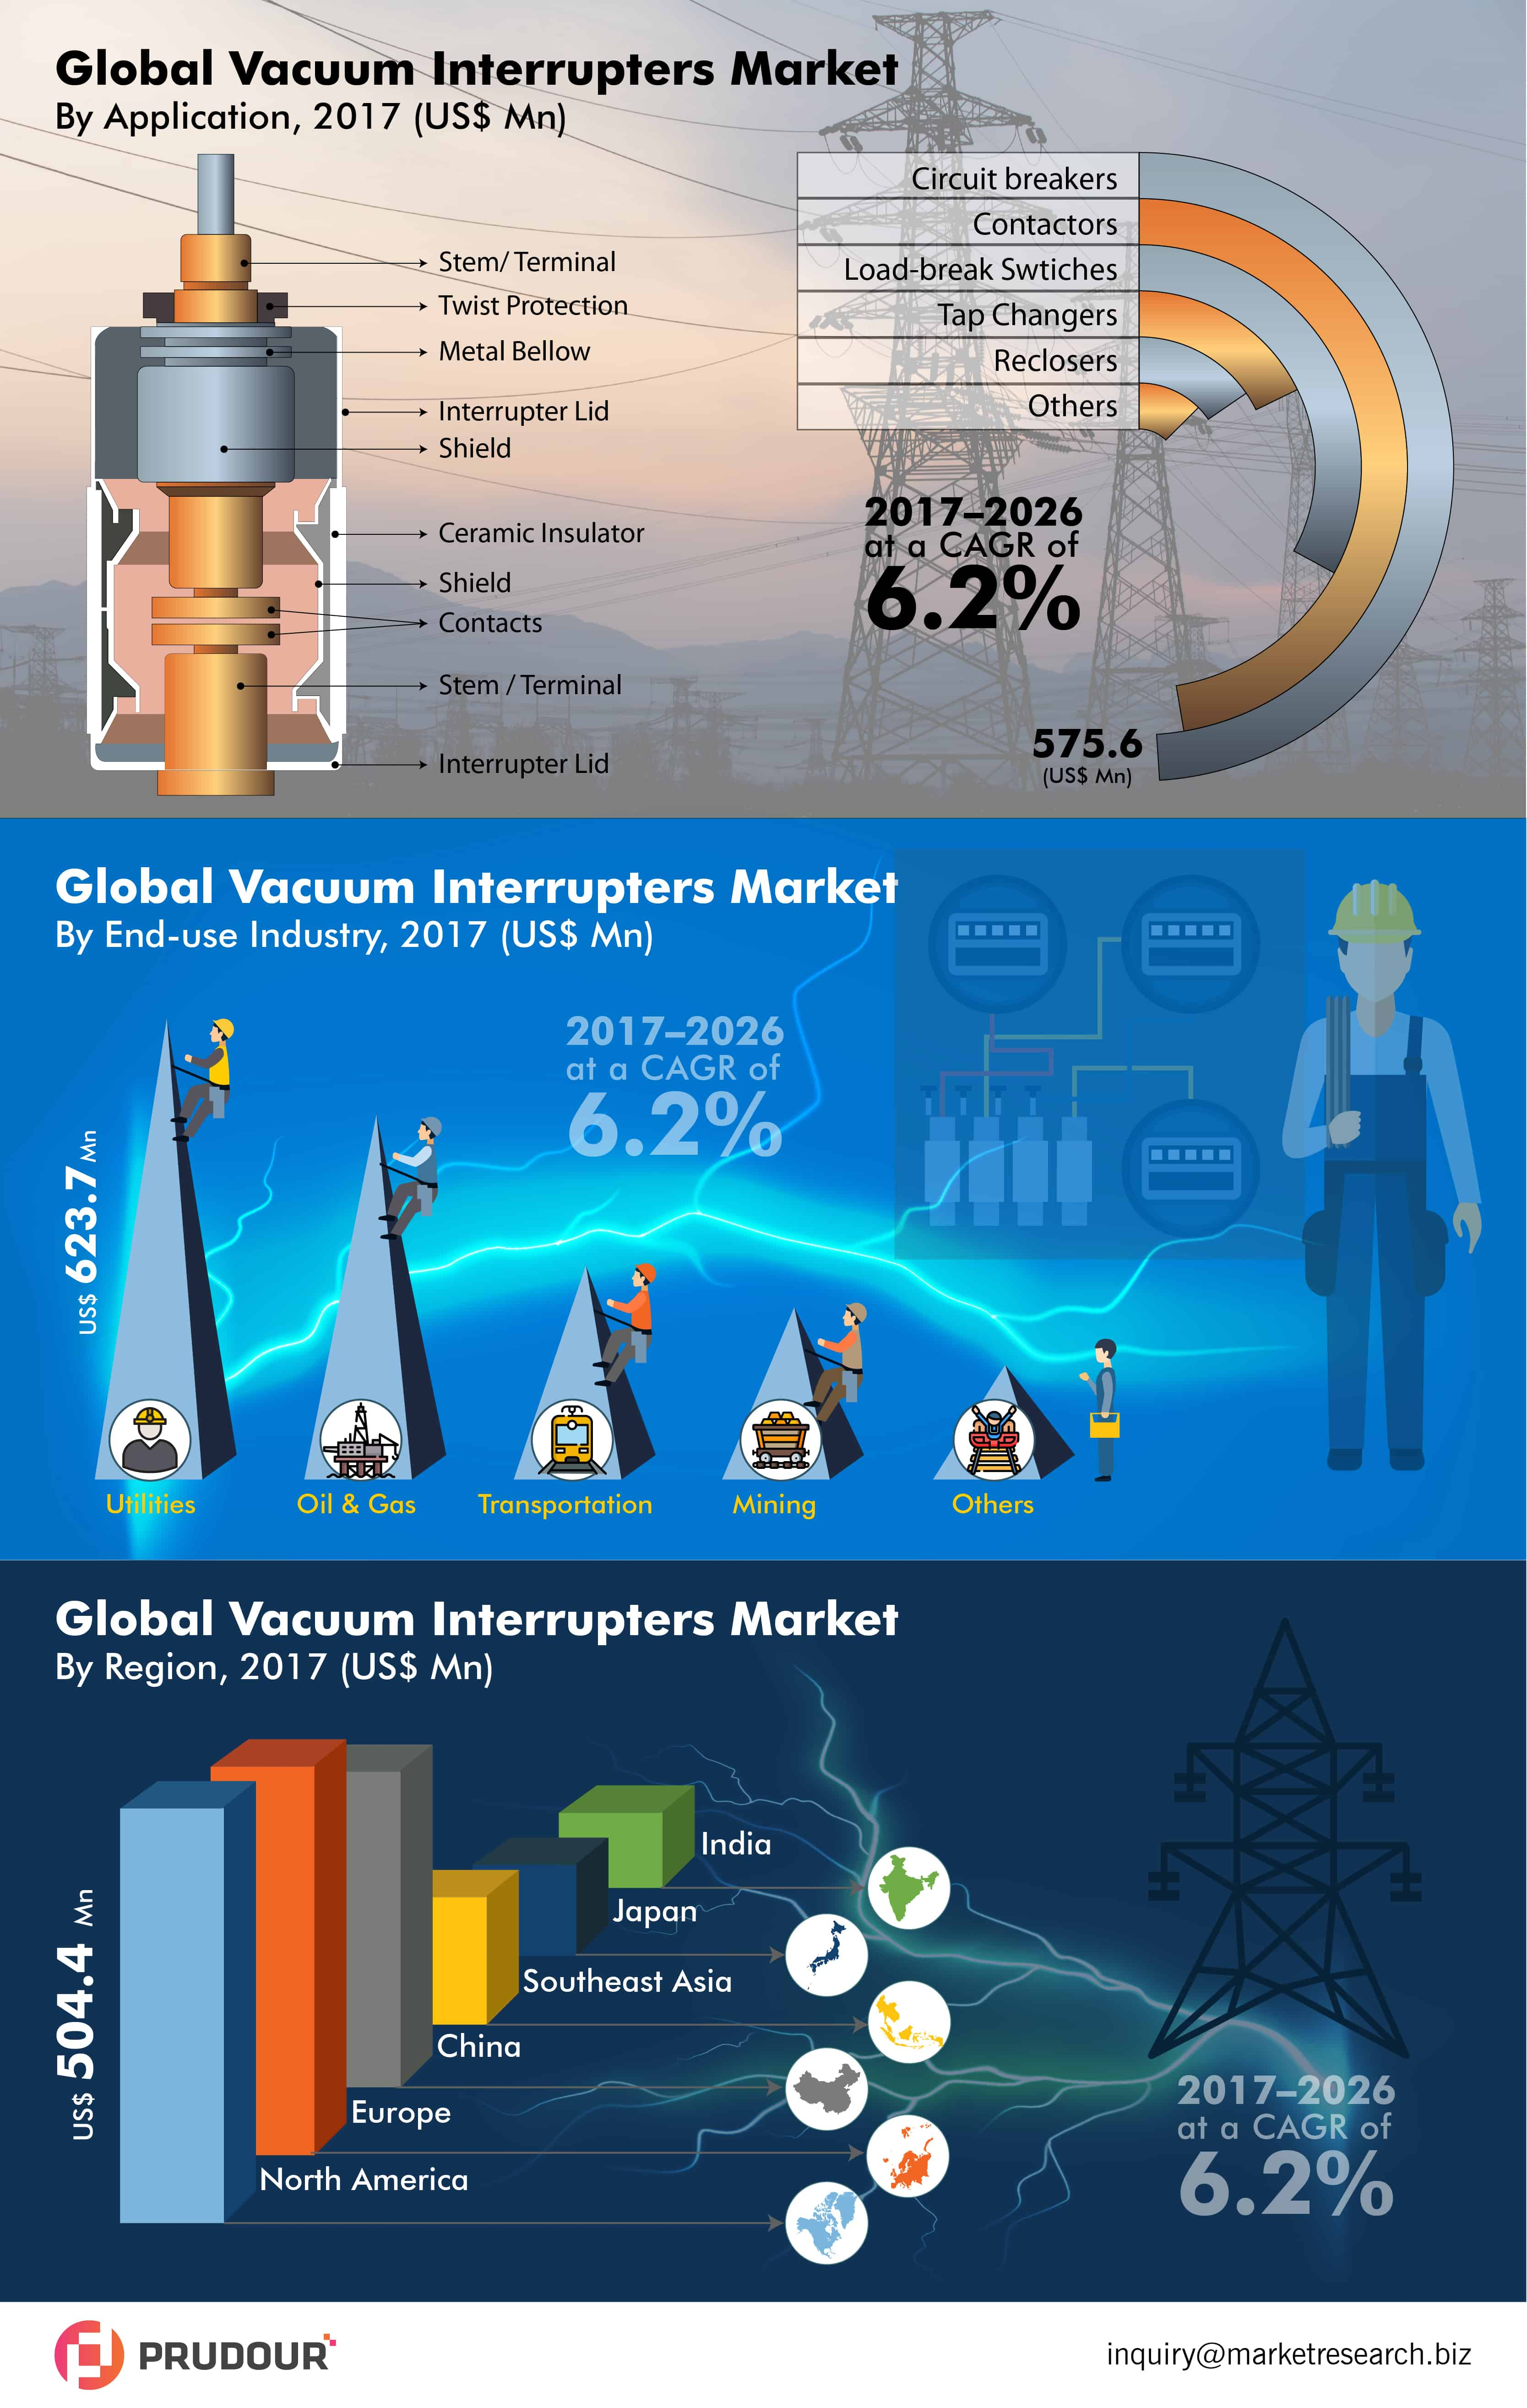 Global Vacuum Interrupters Market